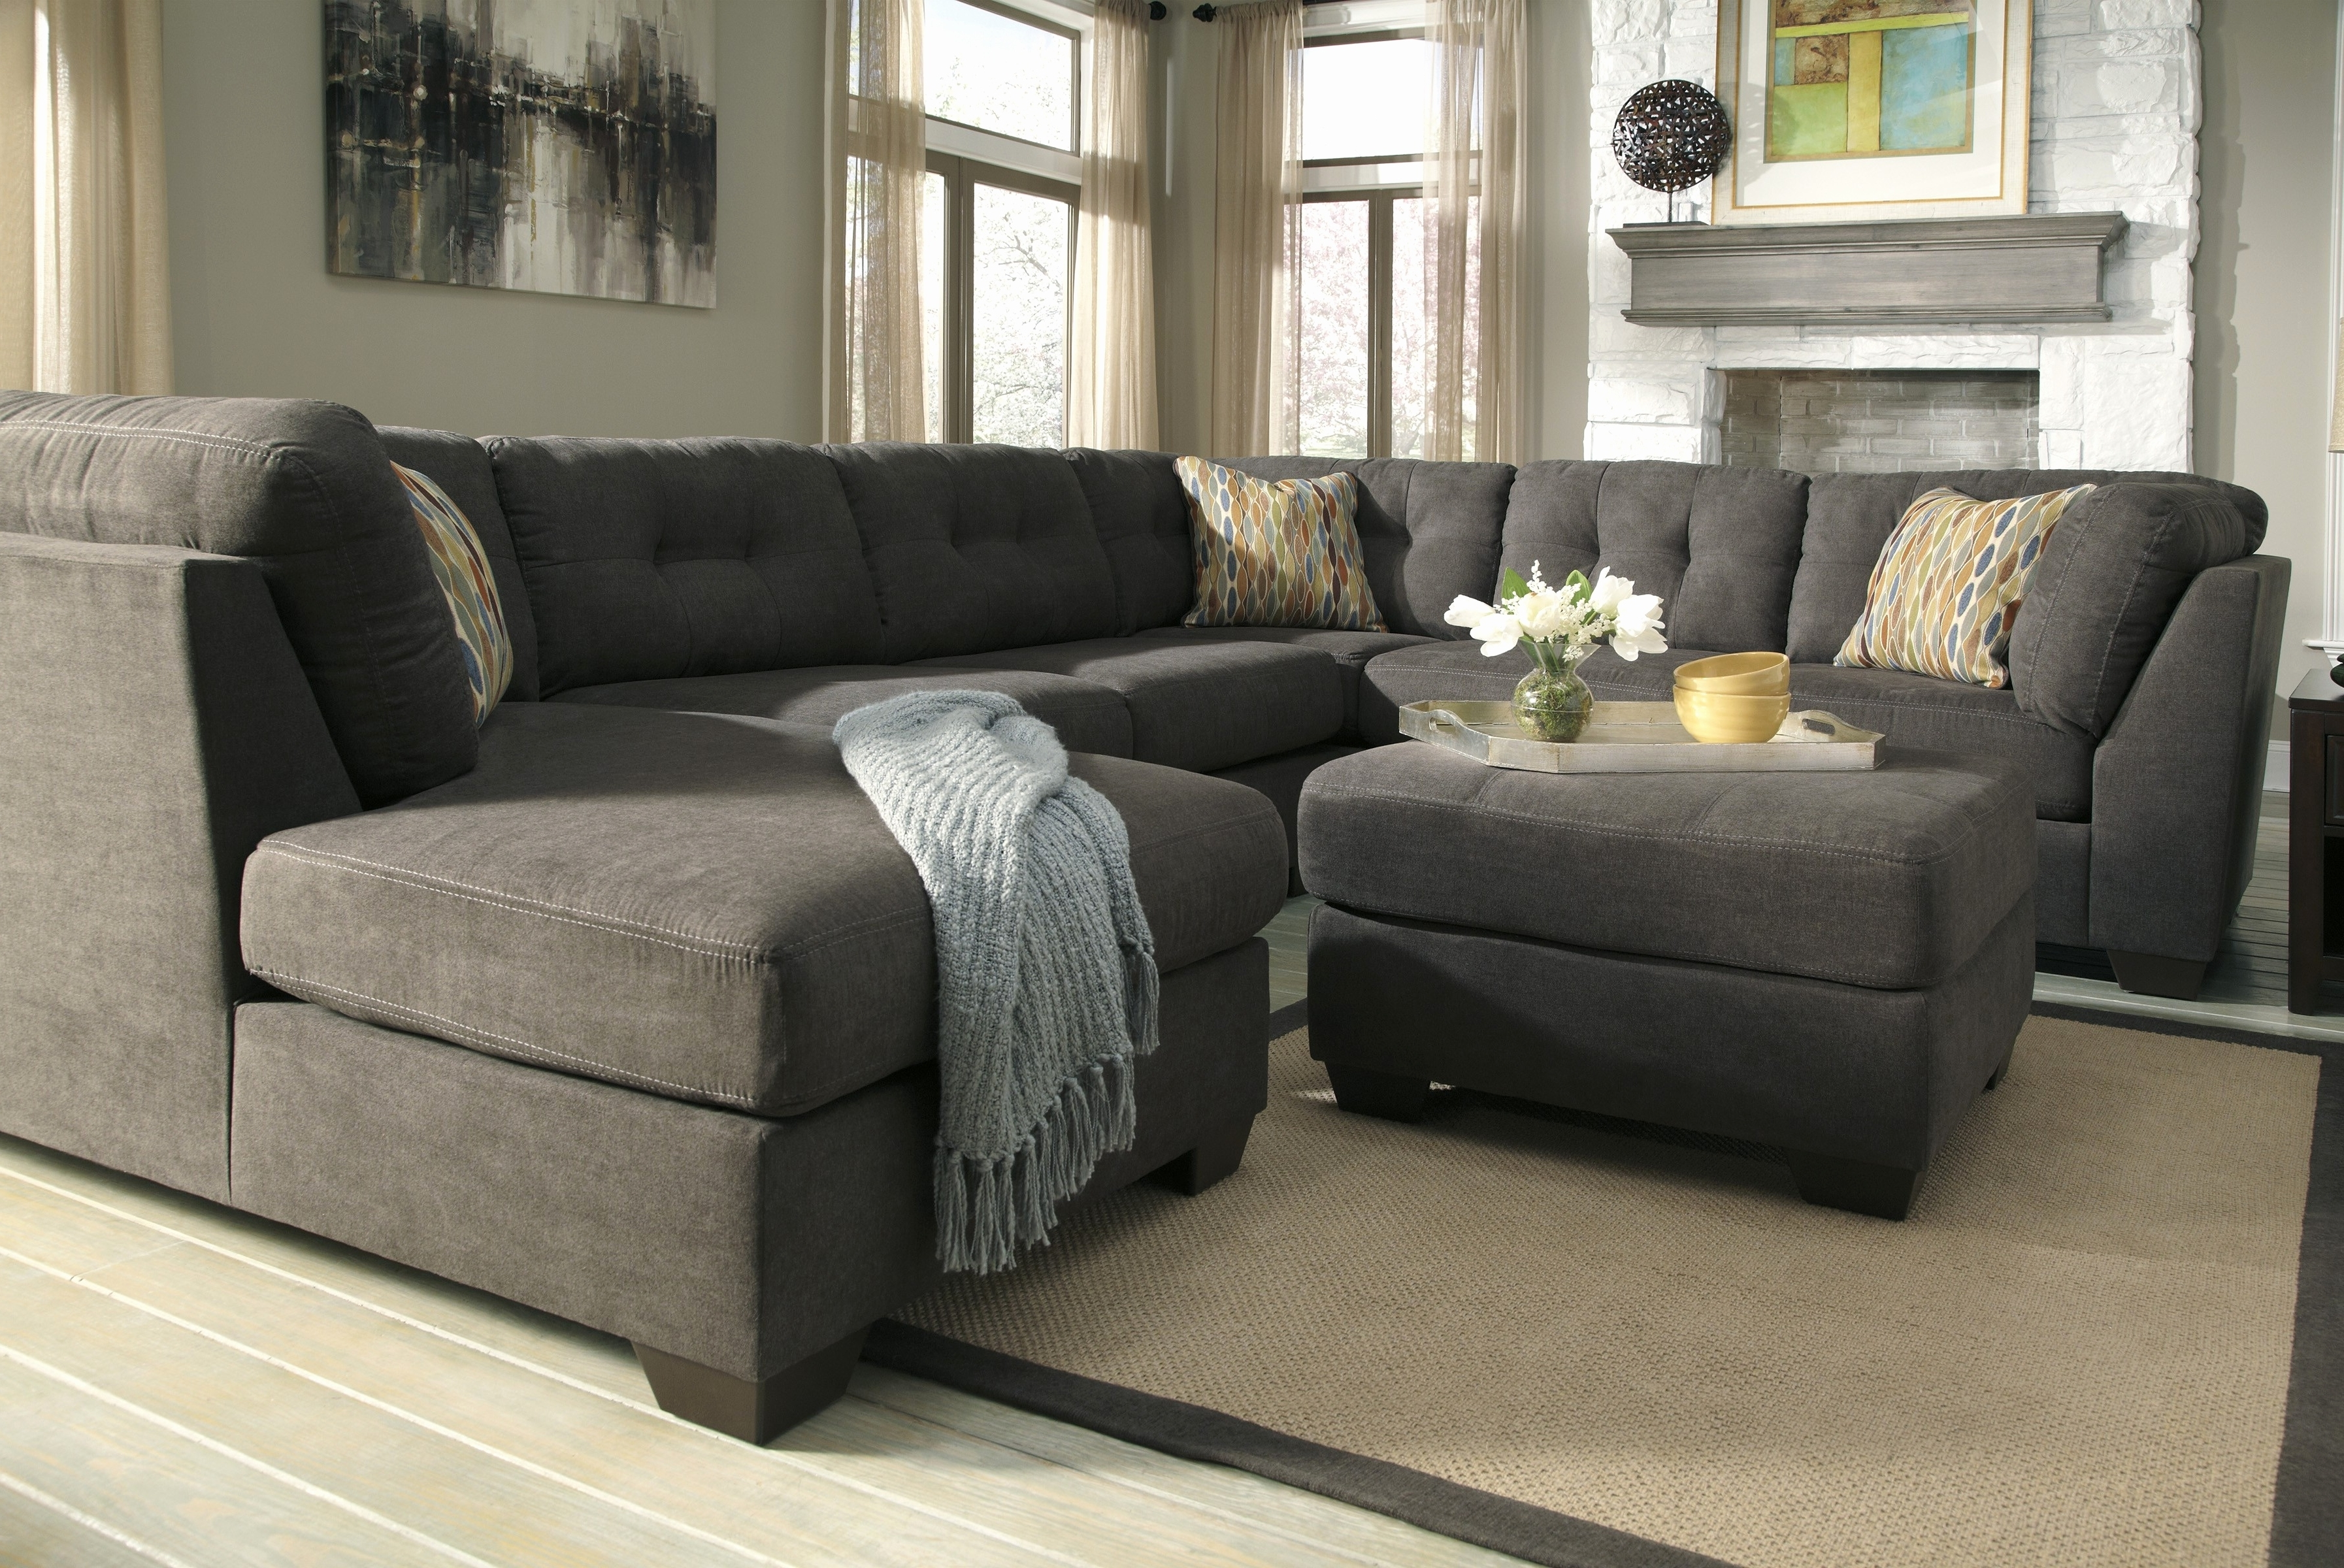 Preferred Beautiful Tufted Sectional Sofa 2018 – Couches And Sofas Ideas Regarding Tufted Sectional Sofas With Chaise (View 5 of 20)